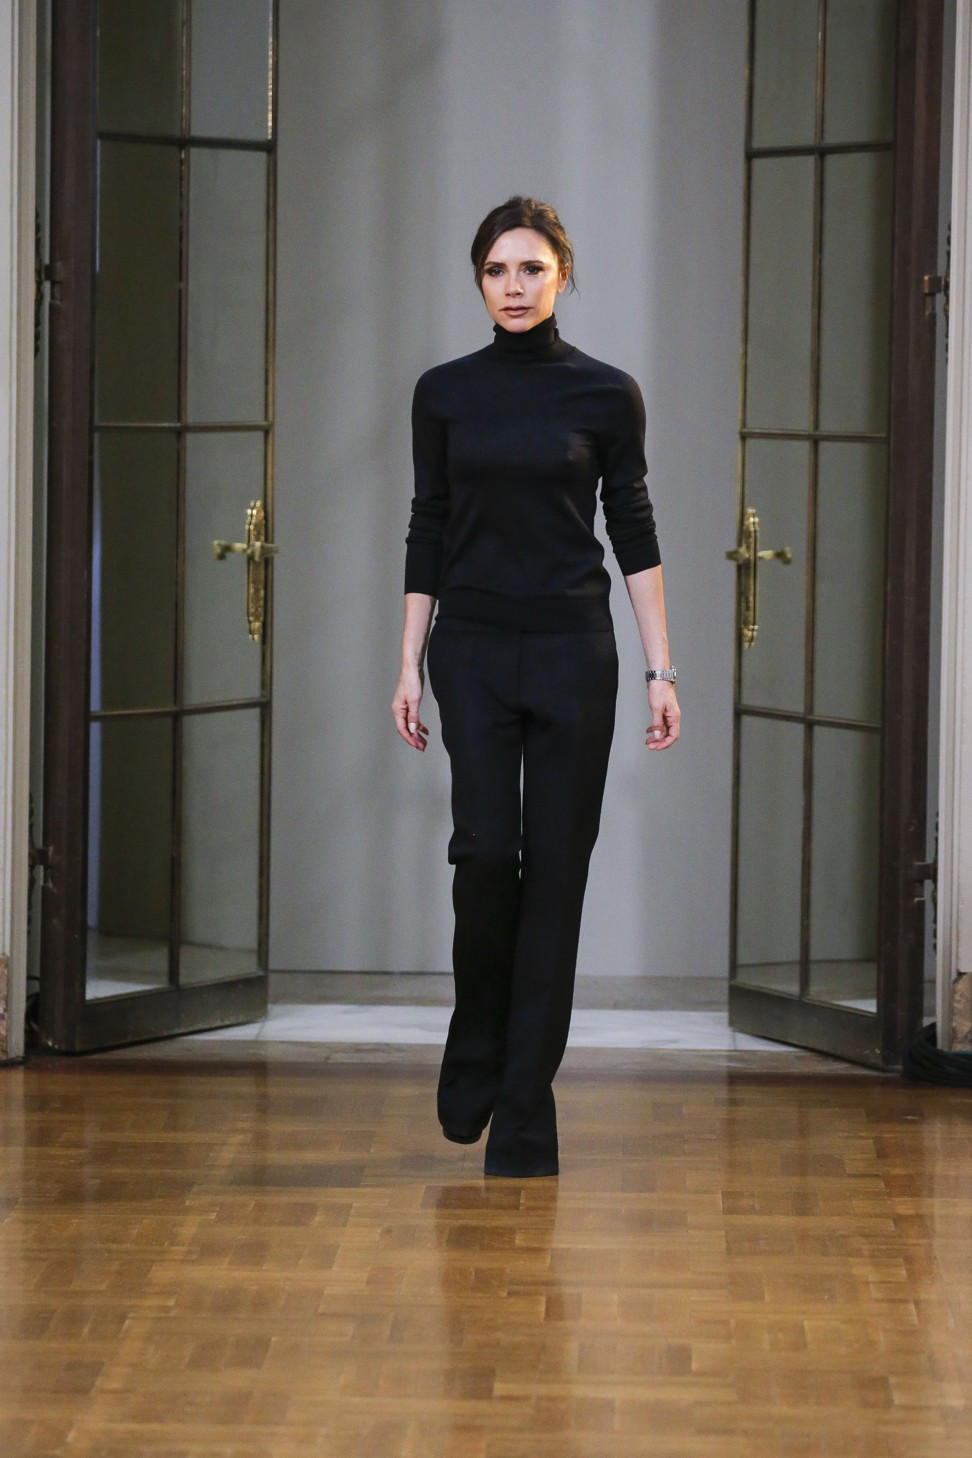 Victoria Beckham At New York Fashion Week It S A Family Affair Style Magazine South China